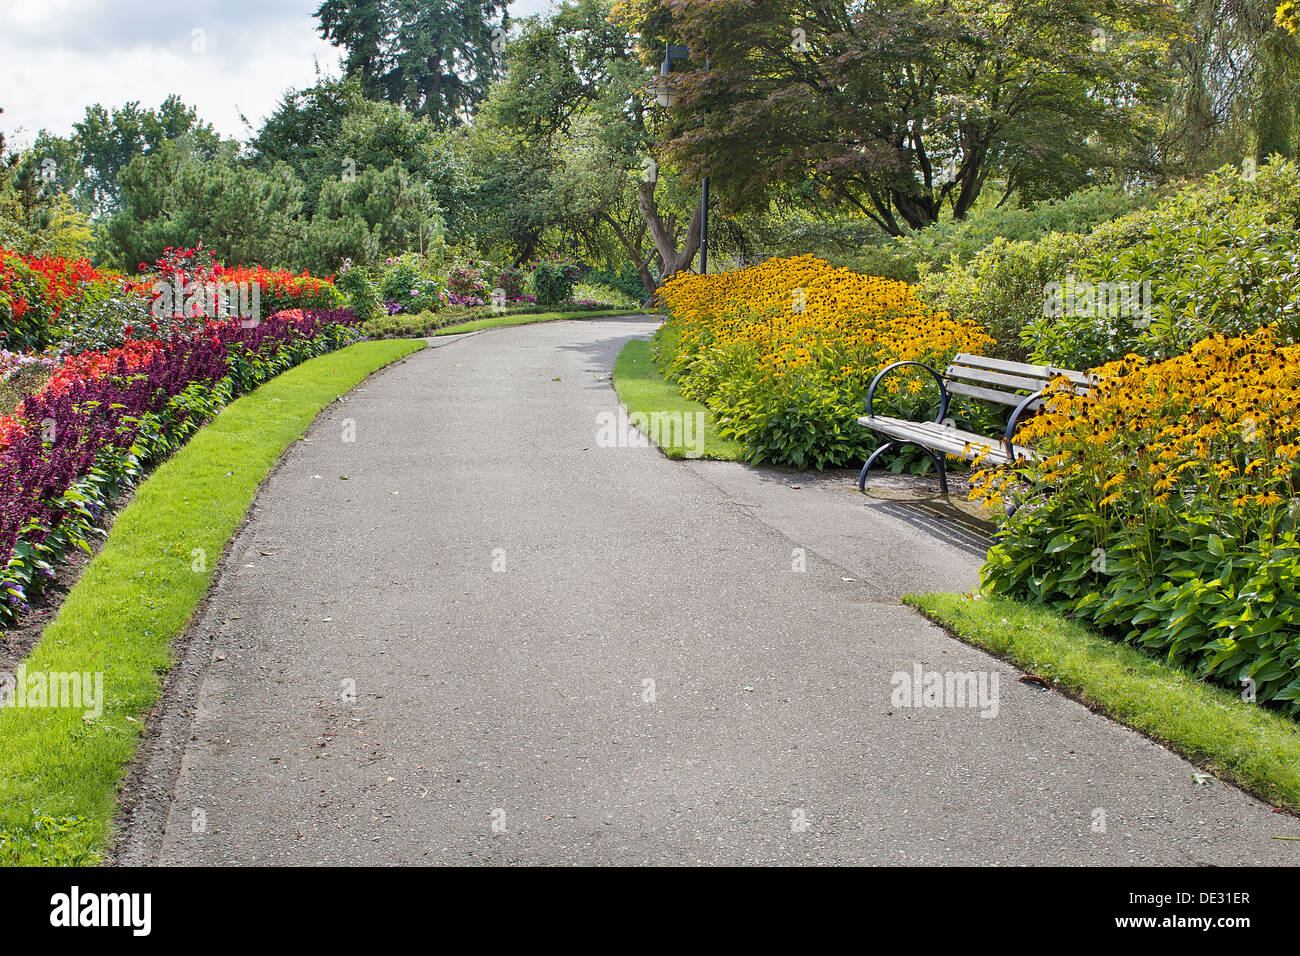 Neighborhood Public Parks Lined with Colorful Flowers Trees and Shrubs with Park Bench - Stock Image